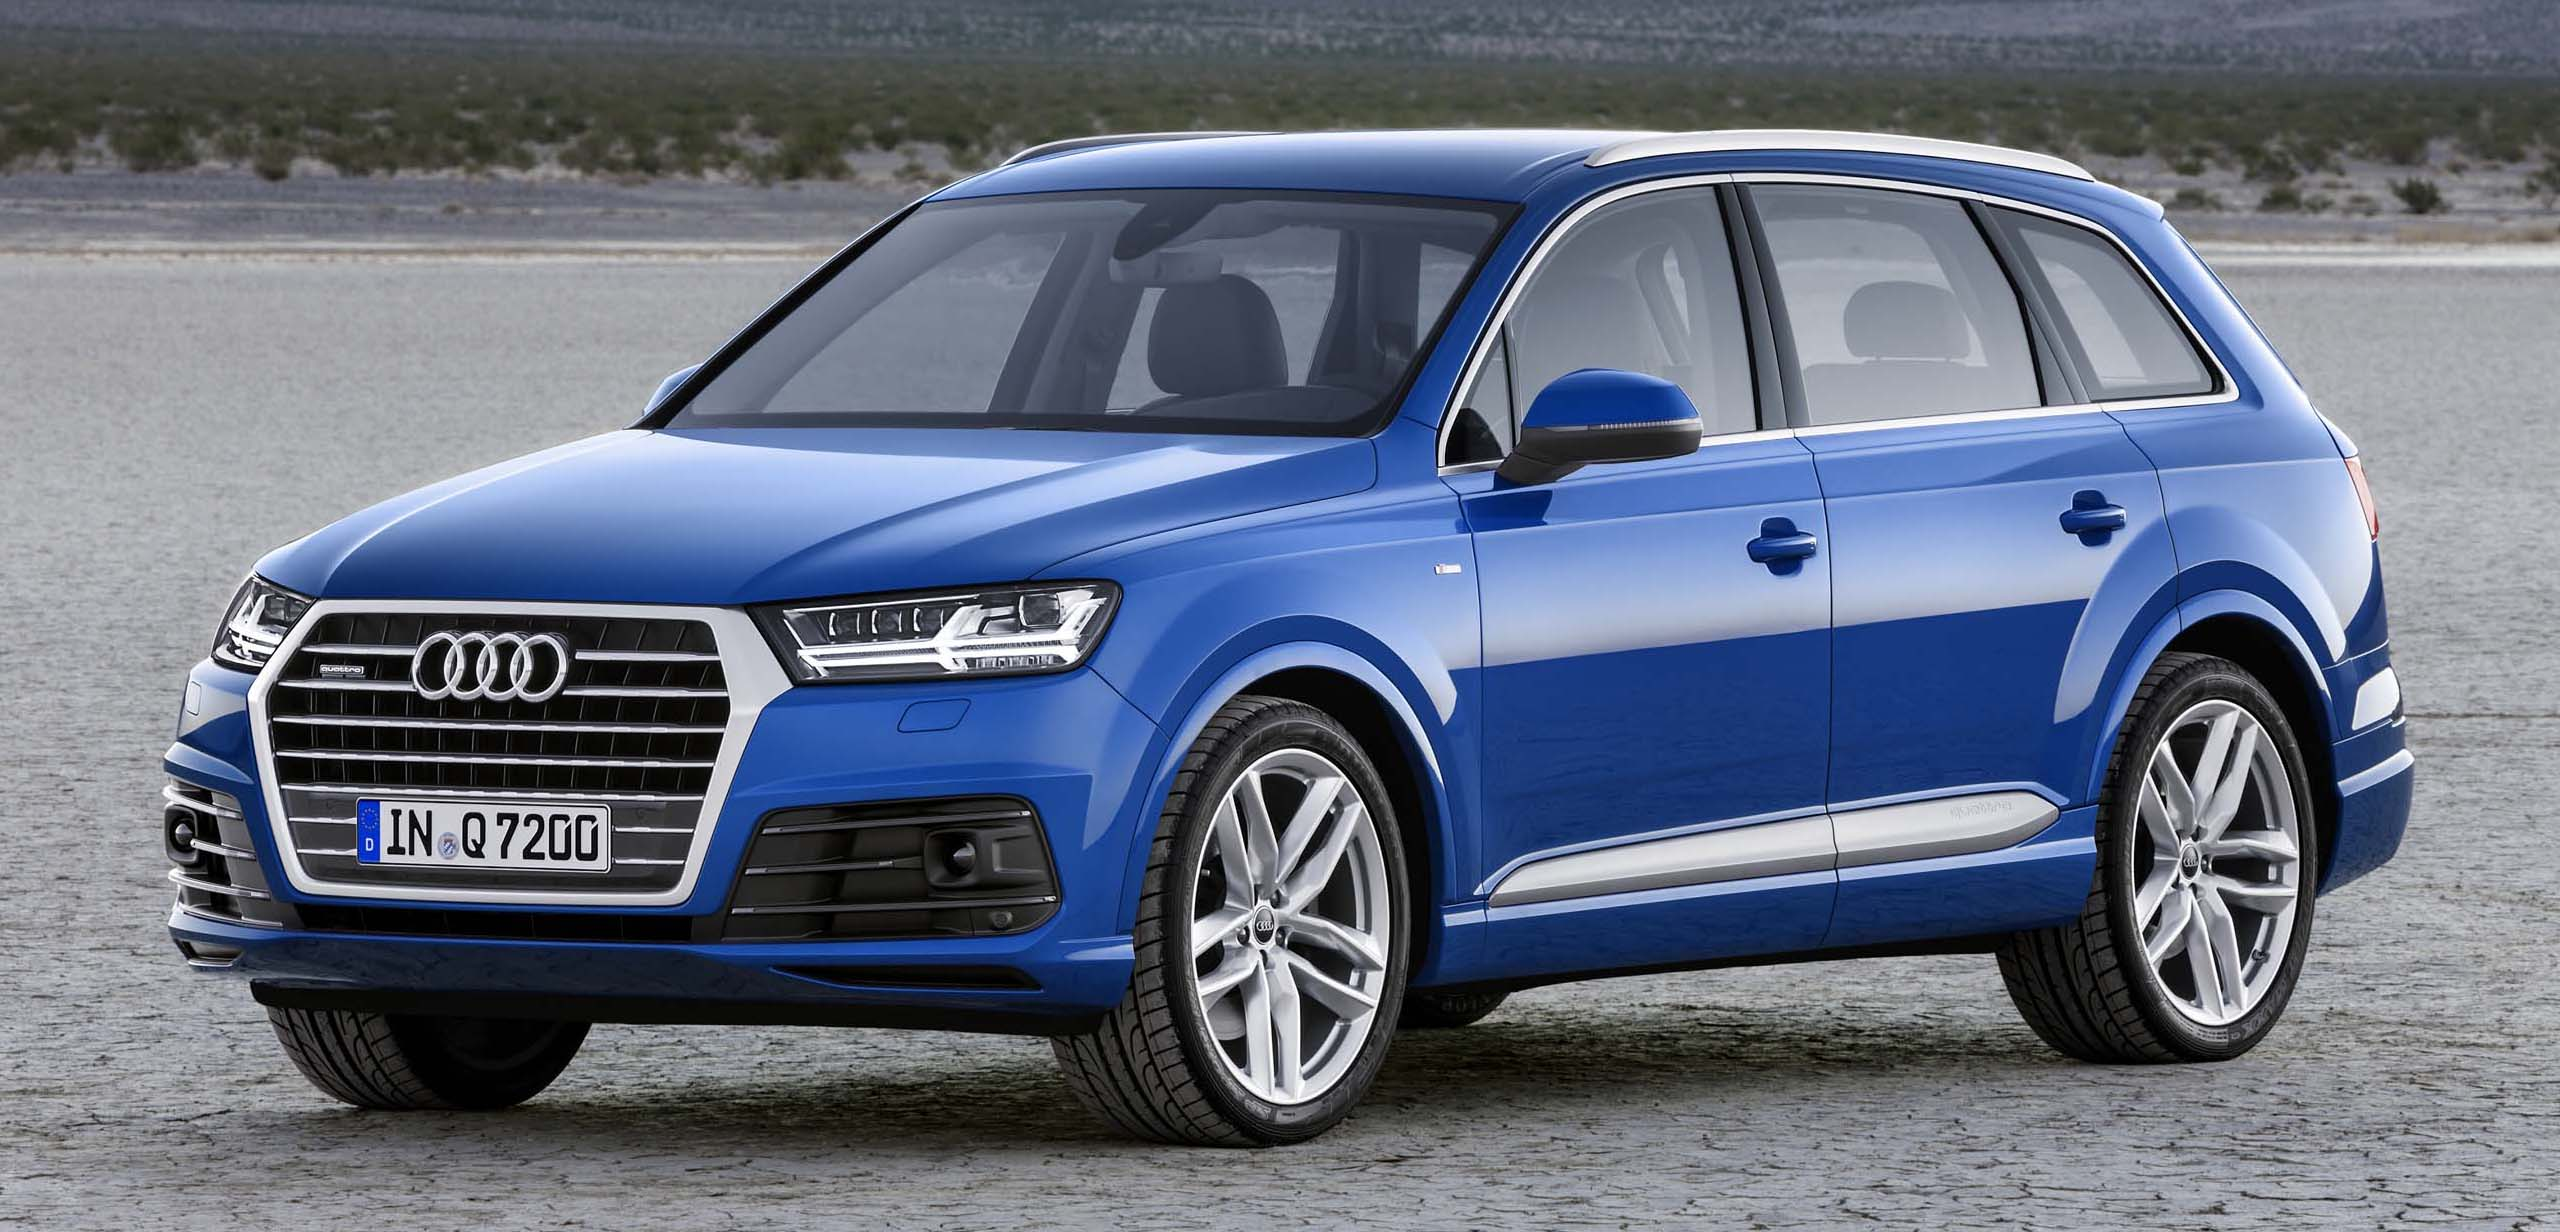 Audi Q7 Second Generation 7 Seater Suv Debuts Image 295880